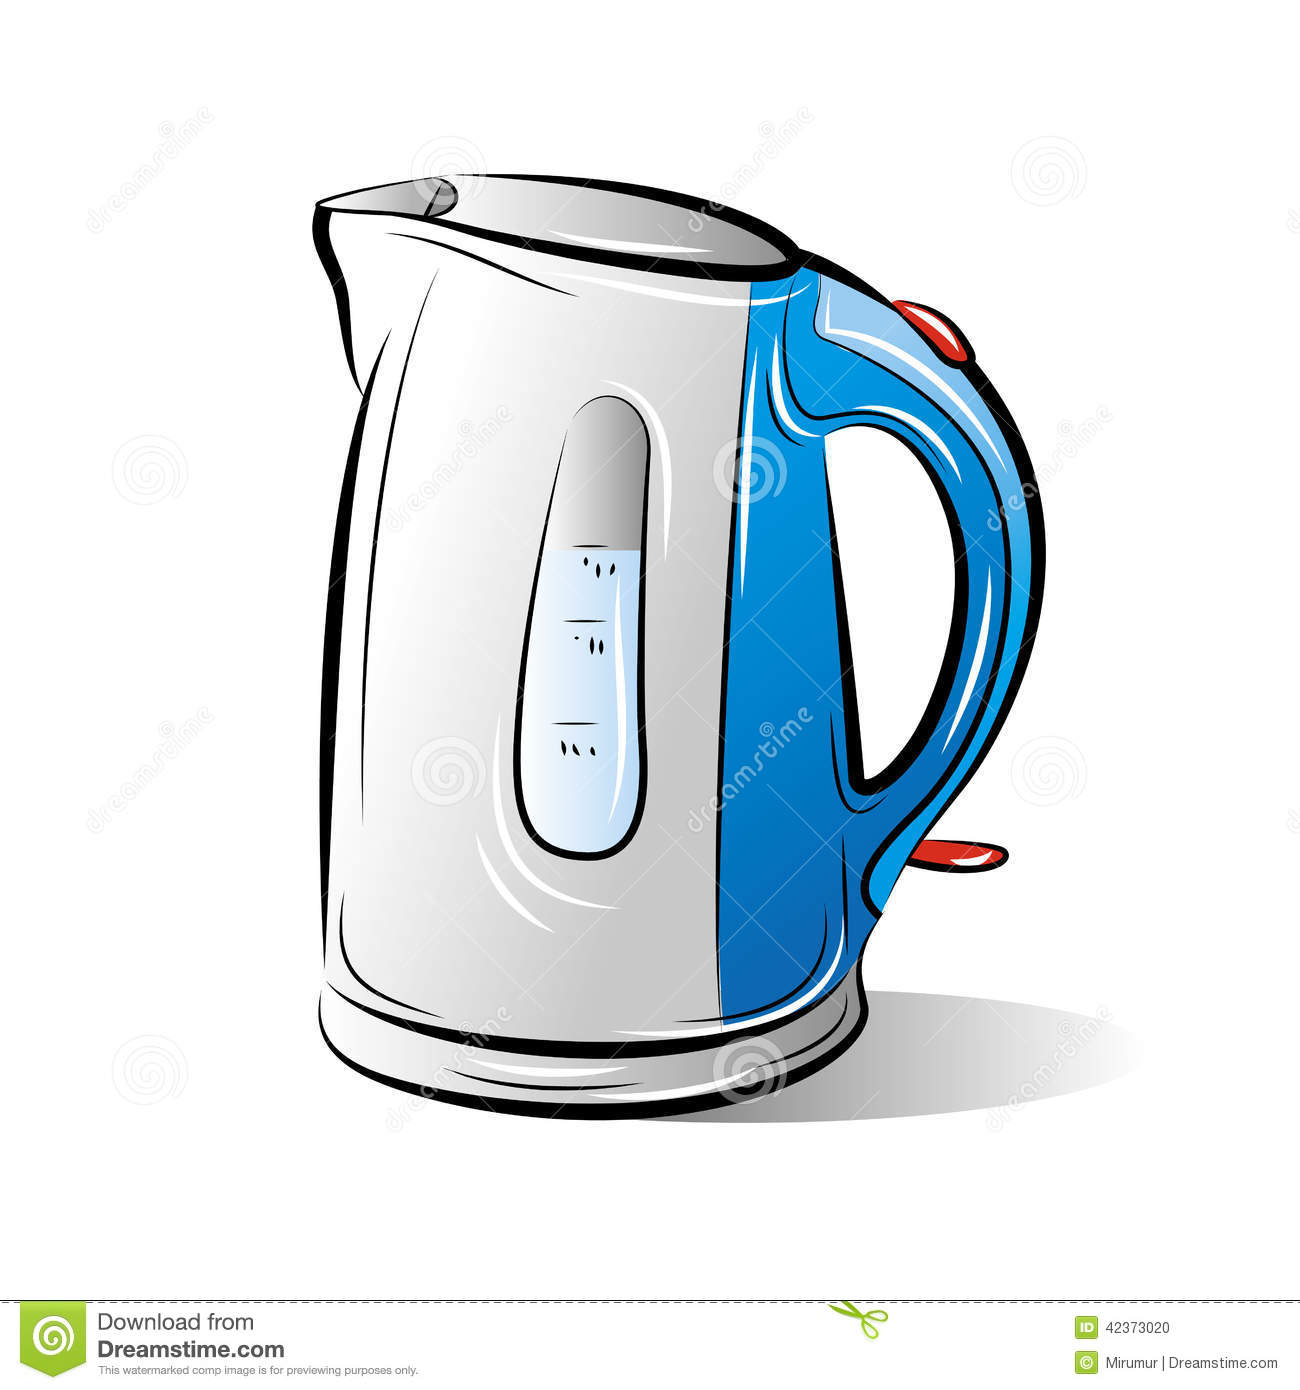 Drawing Of The Blue Teapot Kettle Stock Vector - Image: 42373020